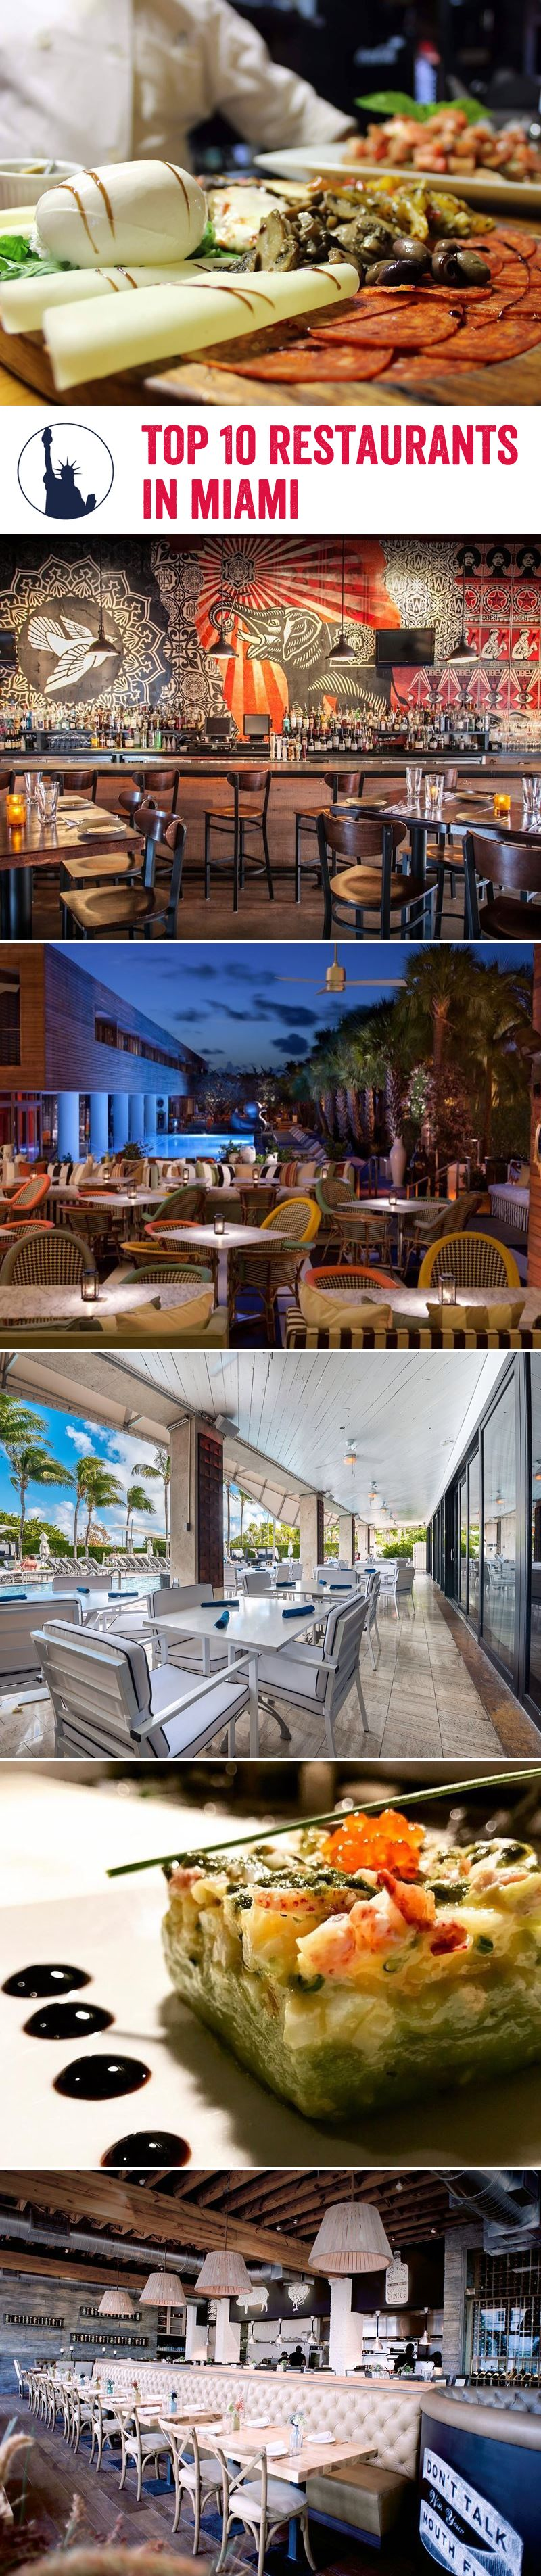 We've put together our list of the top 10 restaurants in Miami guaranteed to overwhelm all your senses with pure bliss